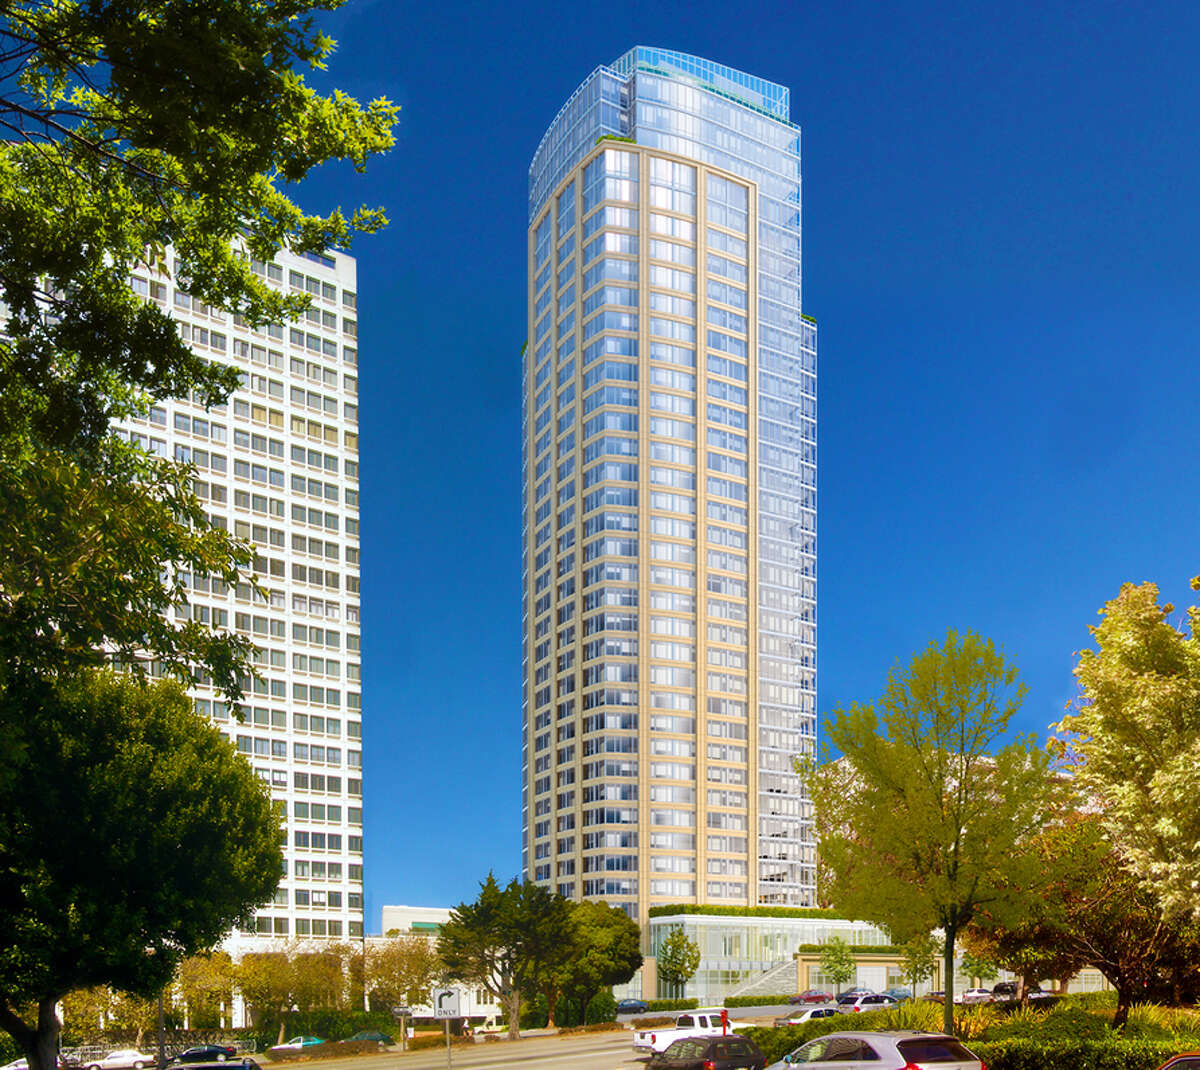 The proposed tower at 1481 Post Street in San Francisco.